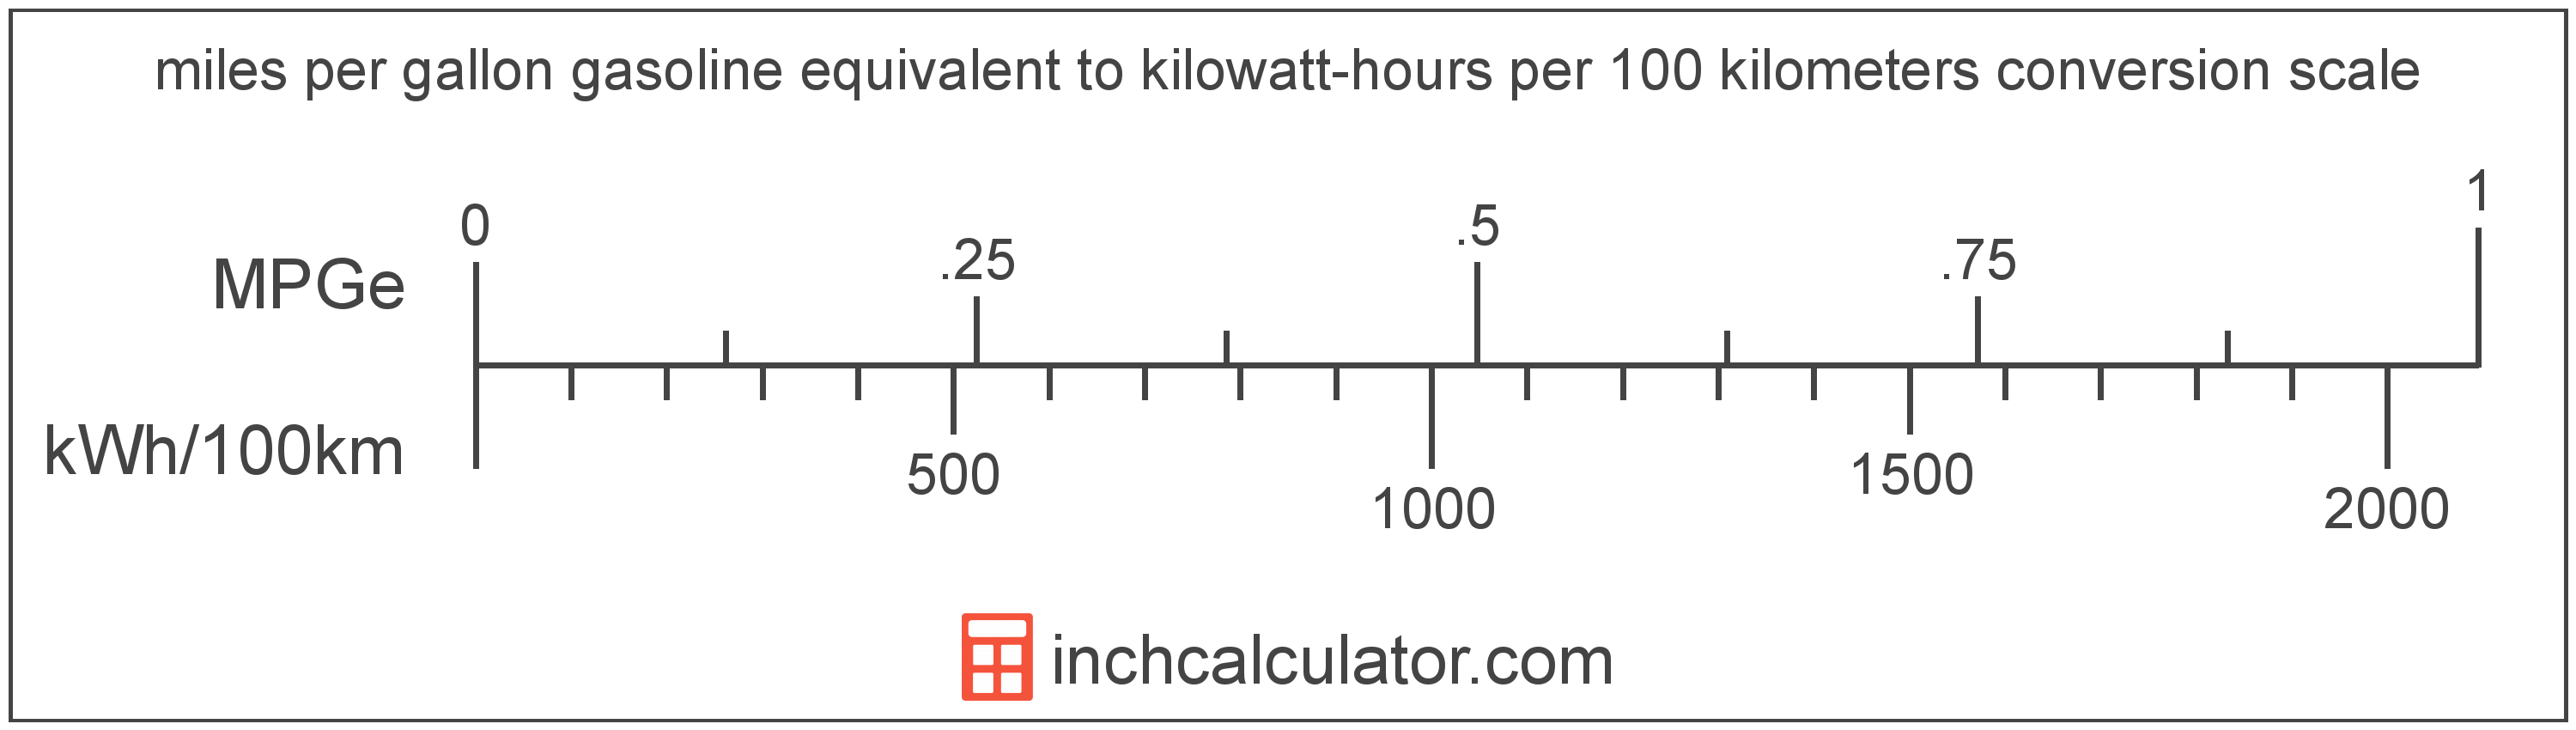 conversion scale showing kilowatt-hours per 100 kilometers and equivalent miles per gallon gasoline equivalent electric car efficiency values